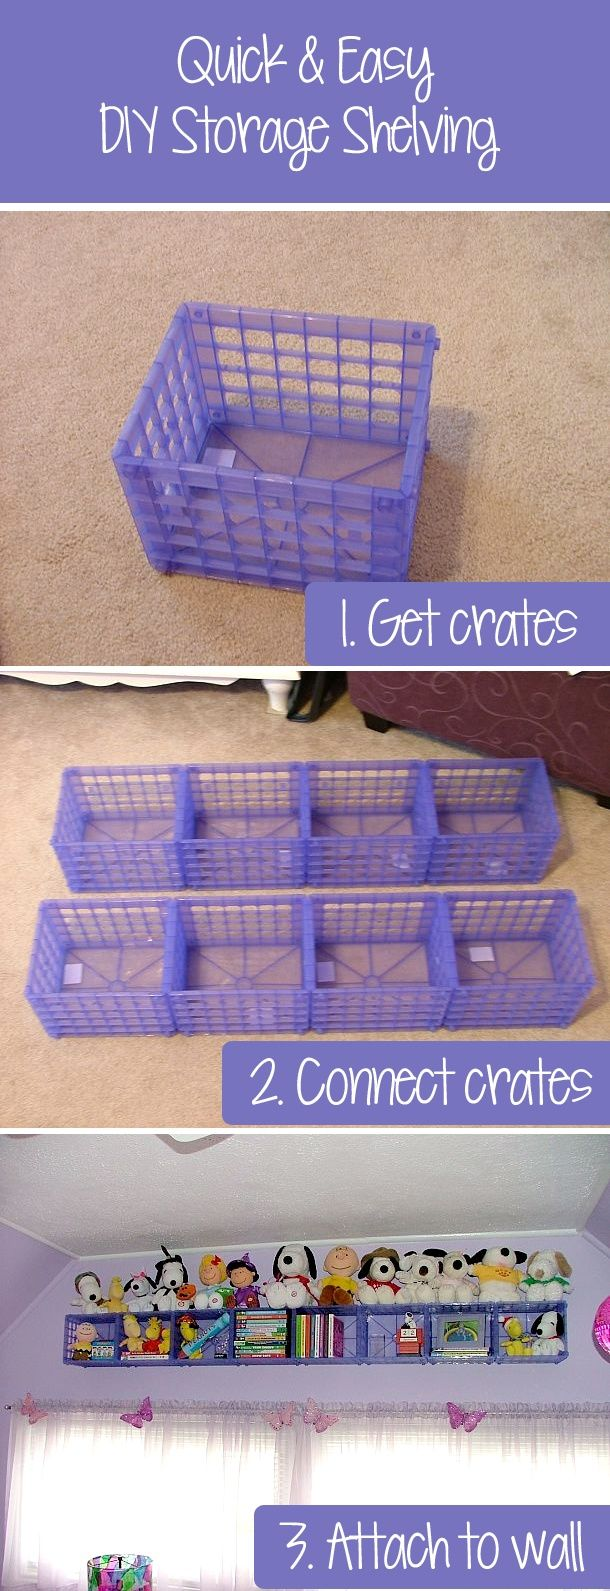 3 step storage solution | Extra storage, Playrooms and Shelves